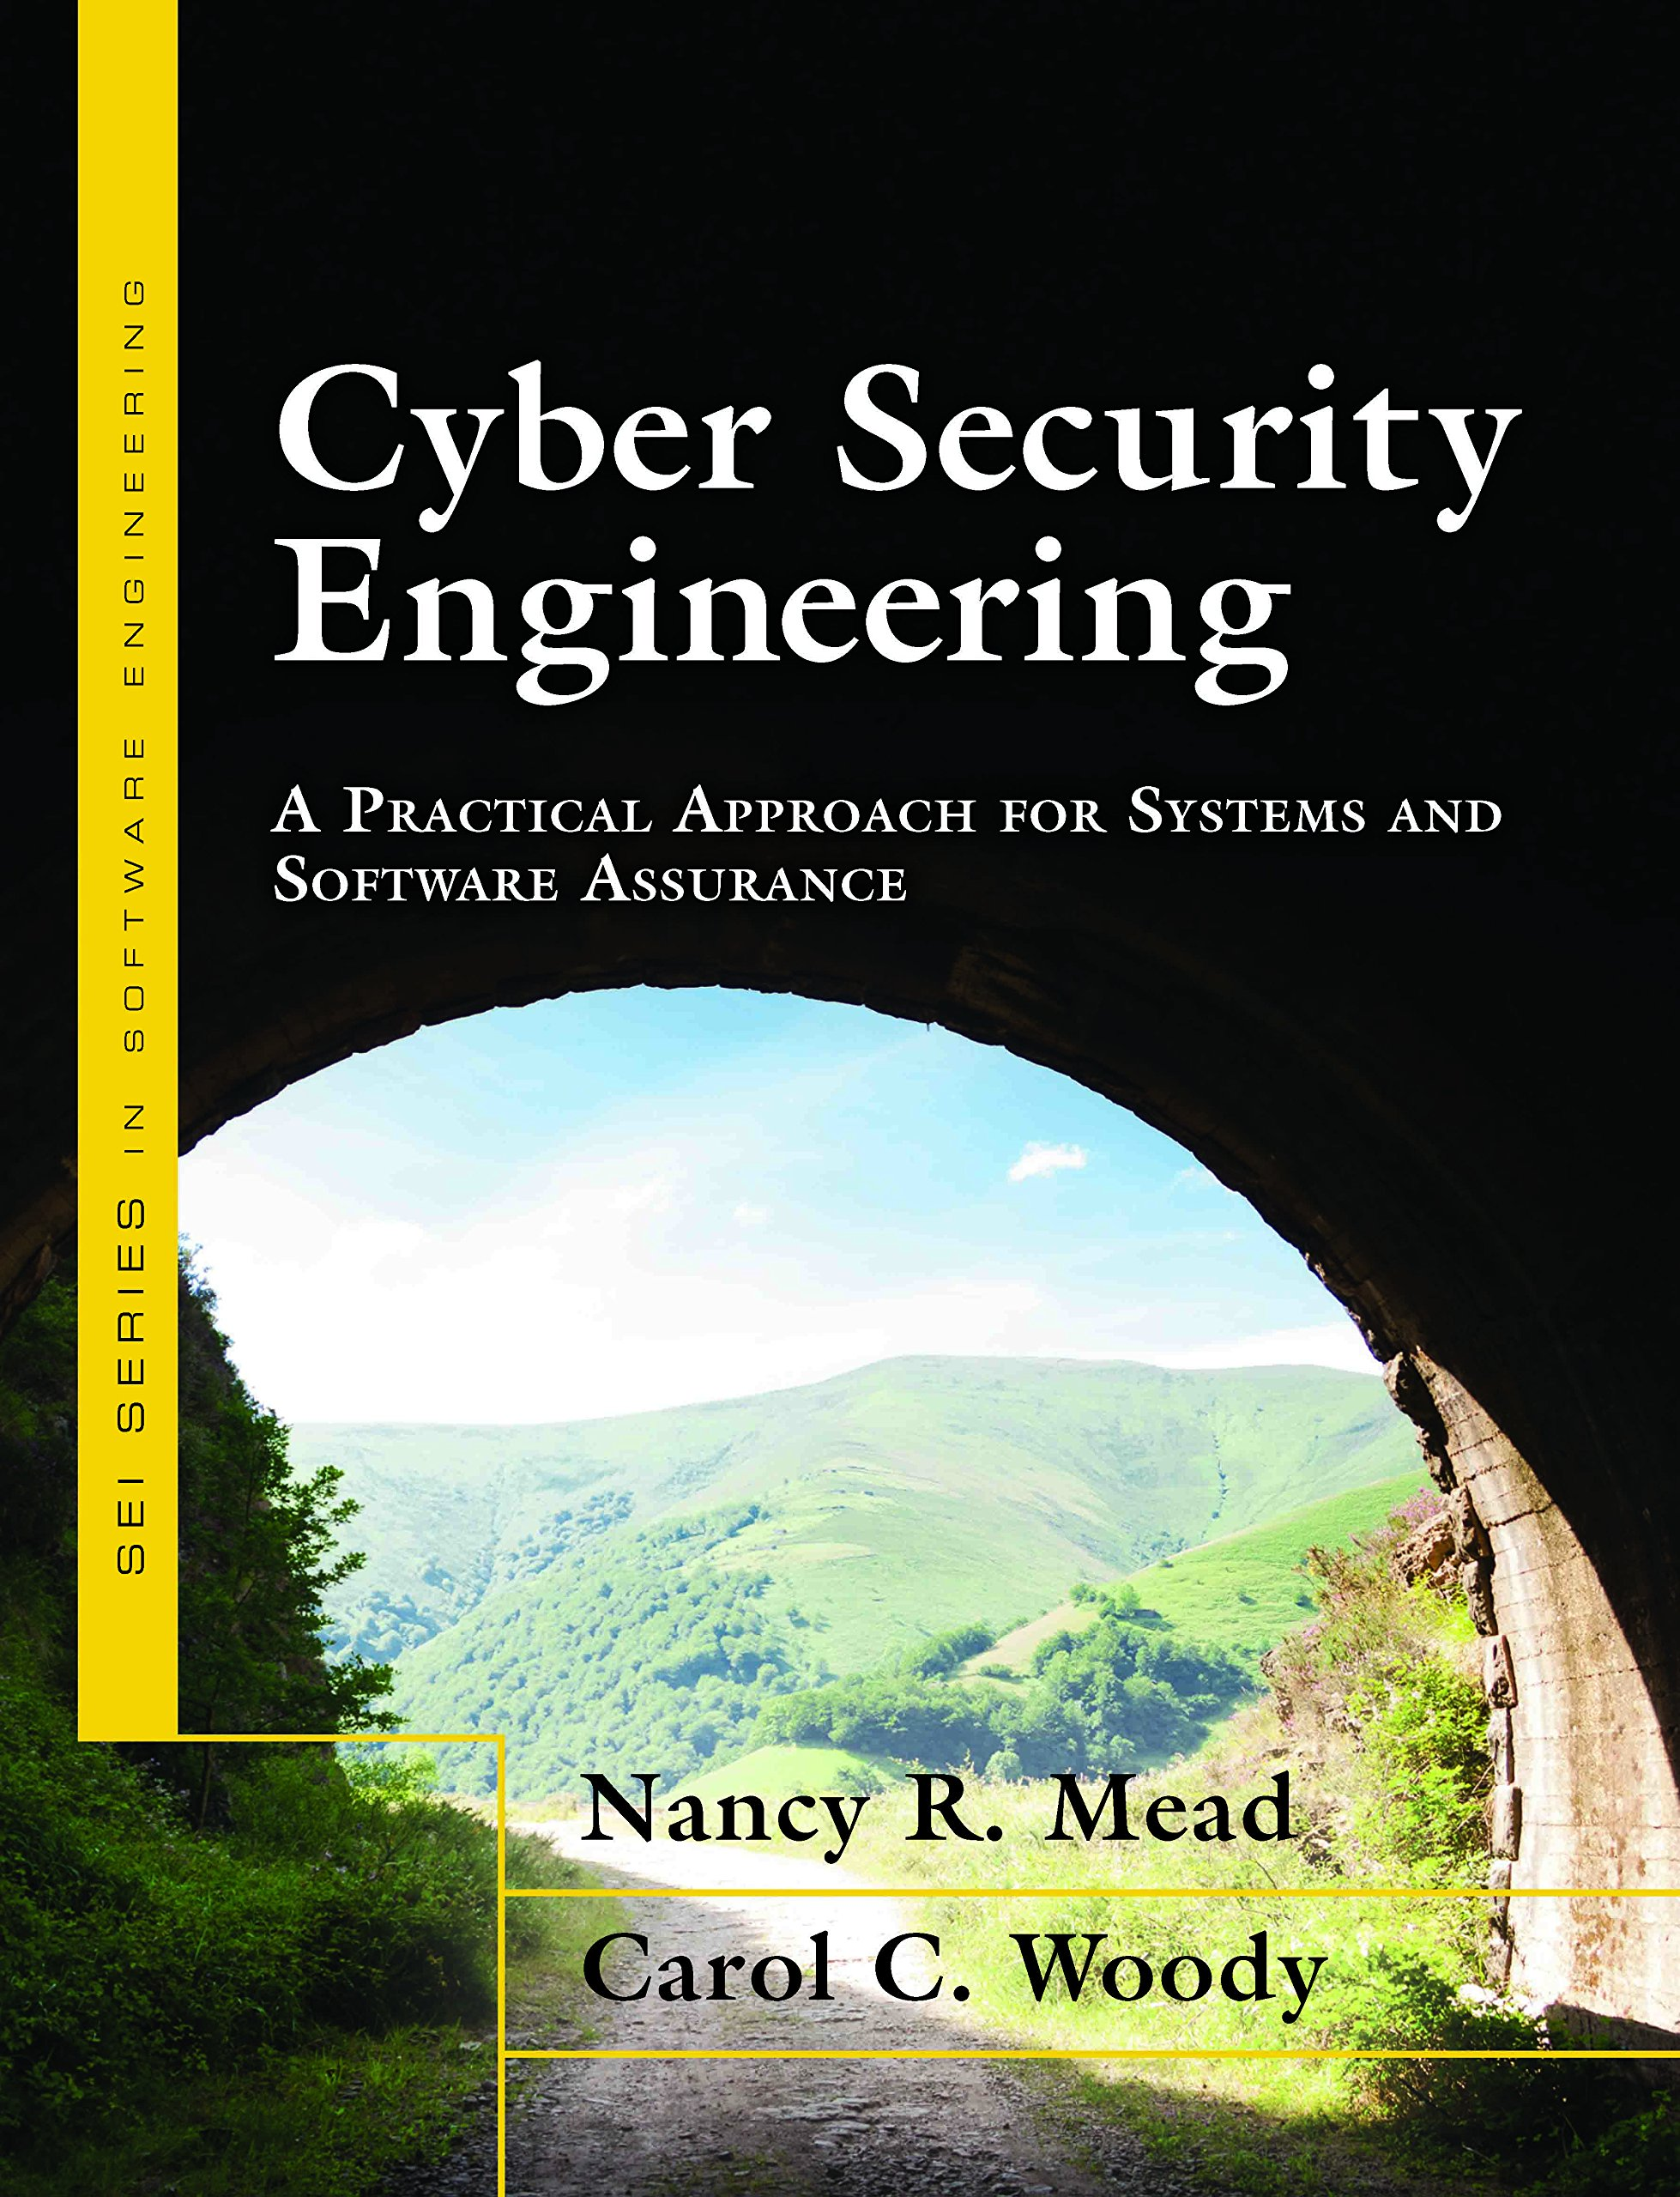 Buy Cyber Security Engineering: A Practical Approach for Systems and  Software Assurance Book Online at Low Prices in India | Cyber Security  Engineering: A ...